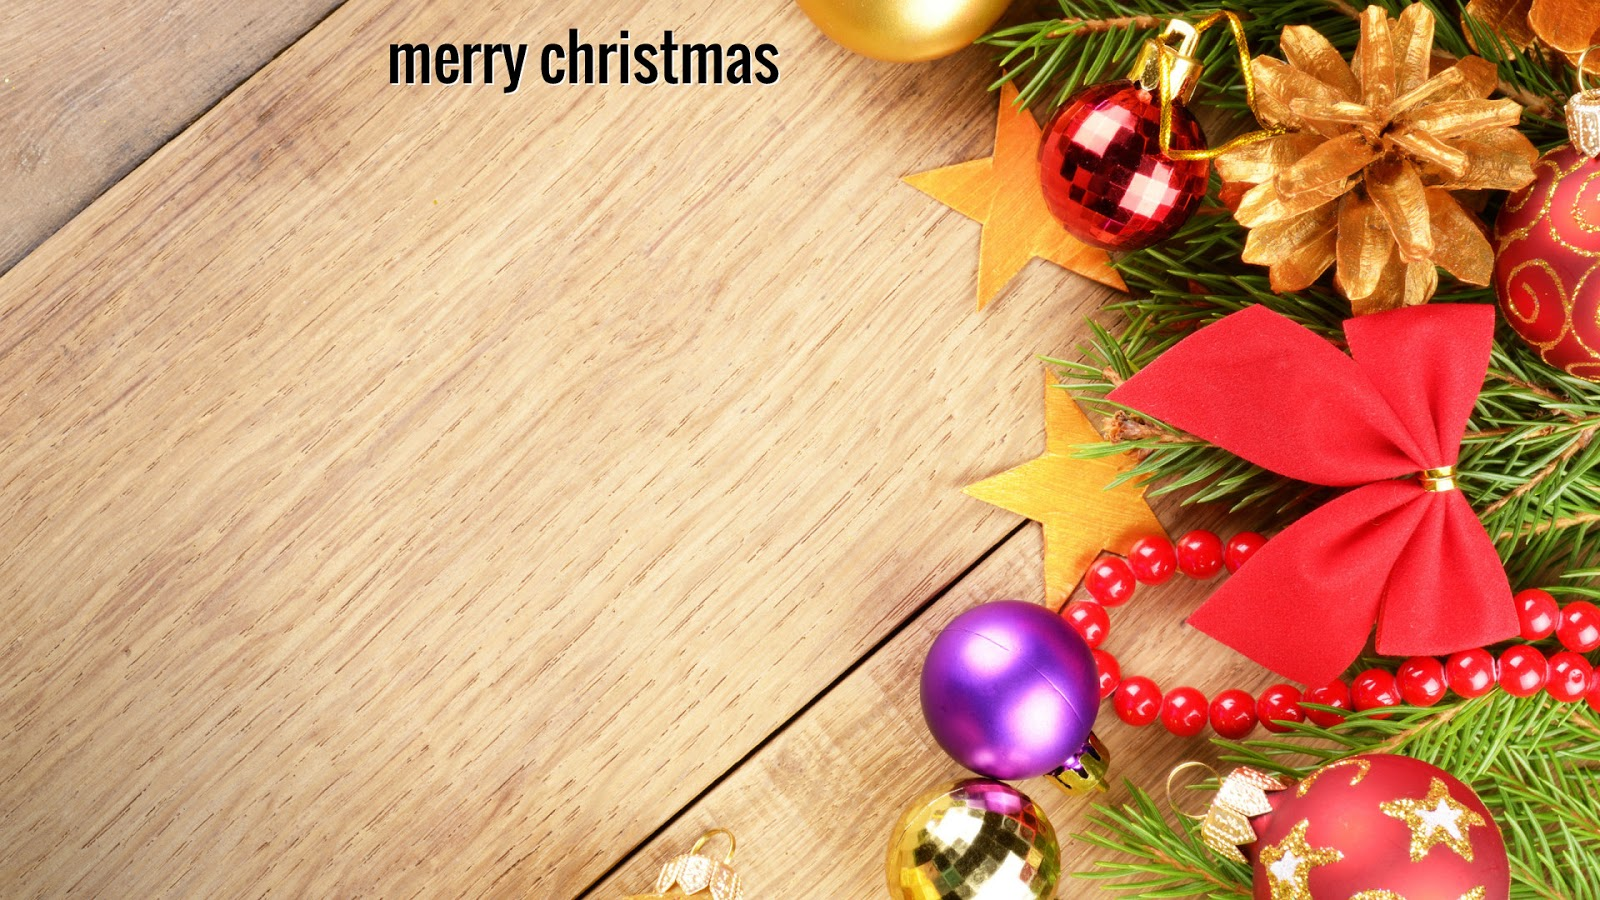 merry christmas wallpaper merry christmas wallpapers